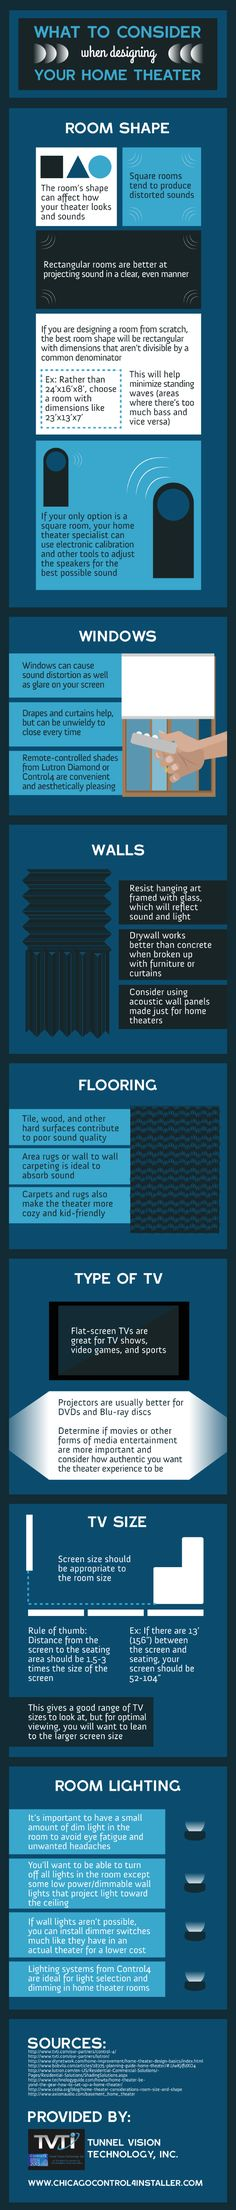 What to Consider When Designing Your Home Theater  #HomeTheater #Home #infographic